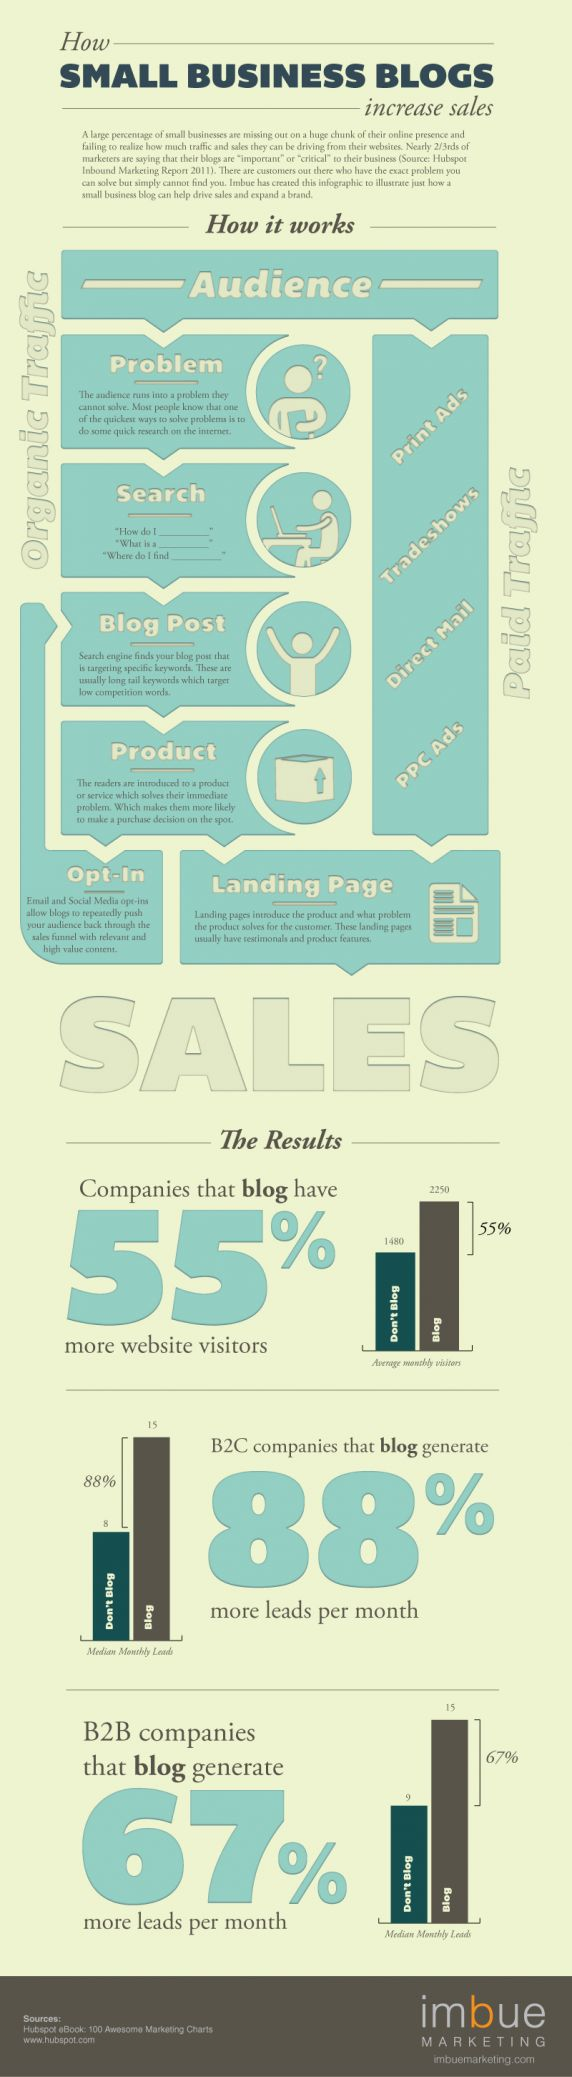 how_small_business_blogs_increase_sales_inforgraphic.jpg